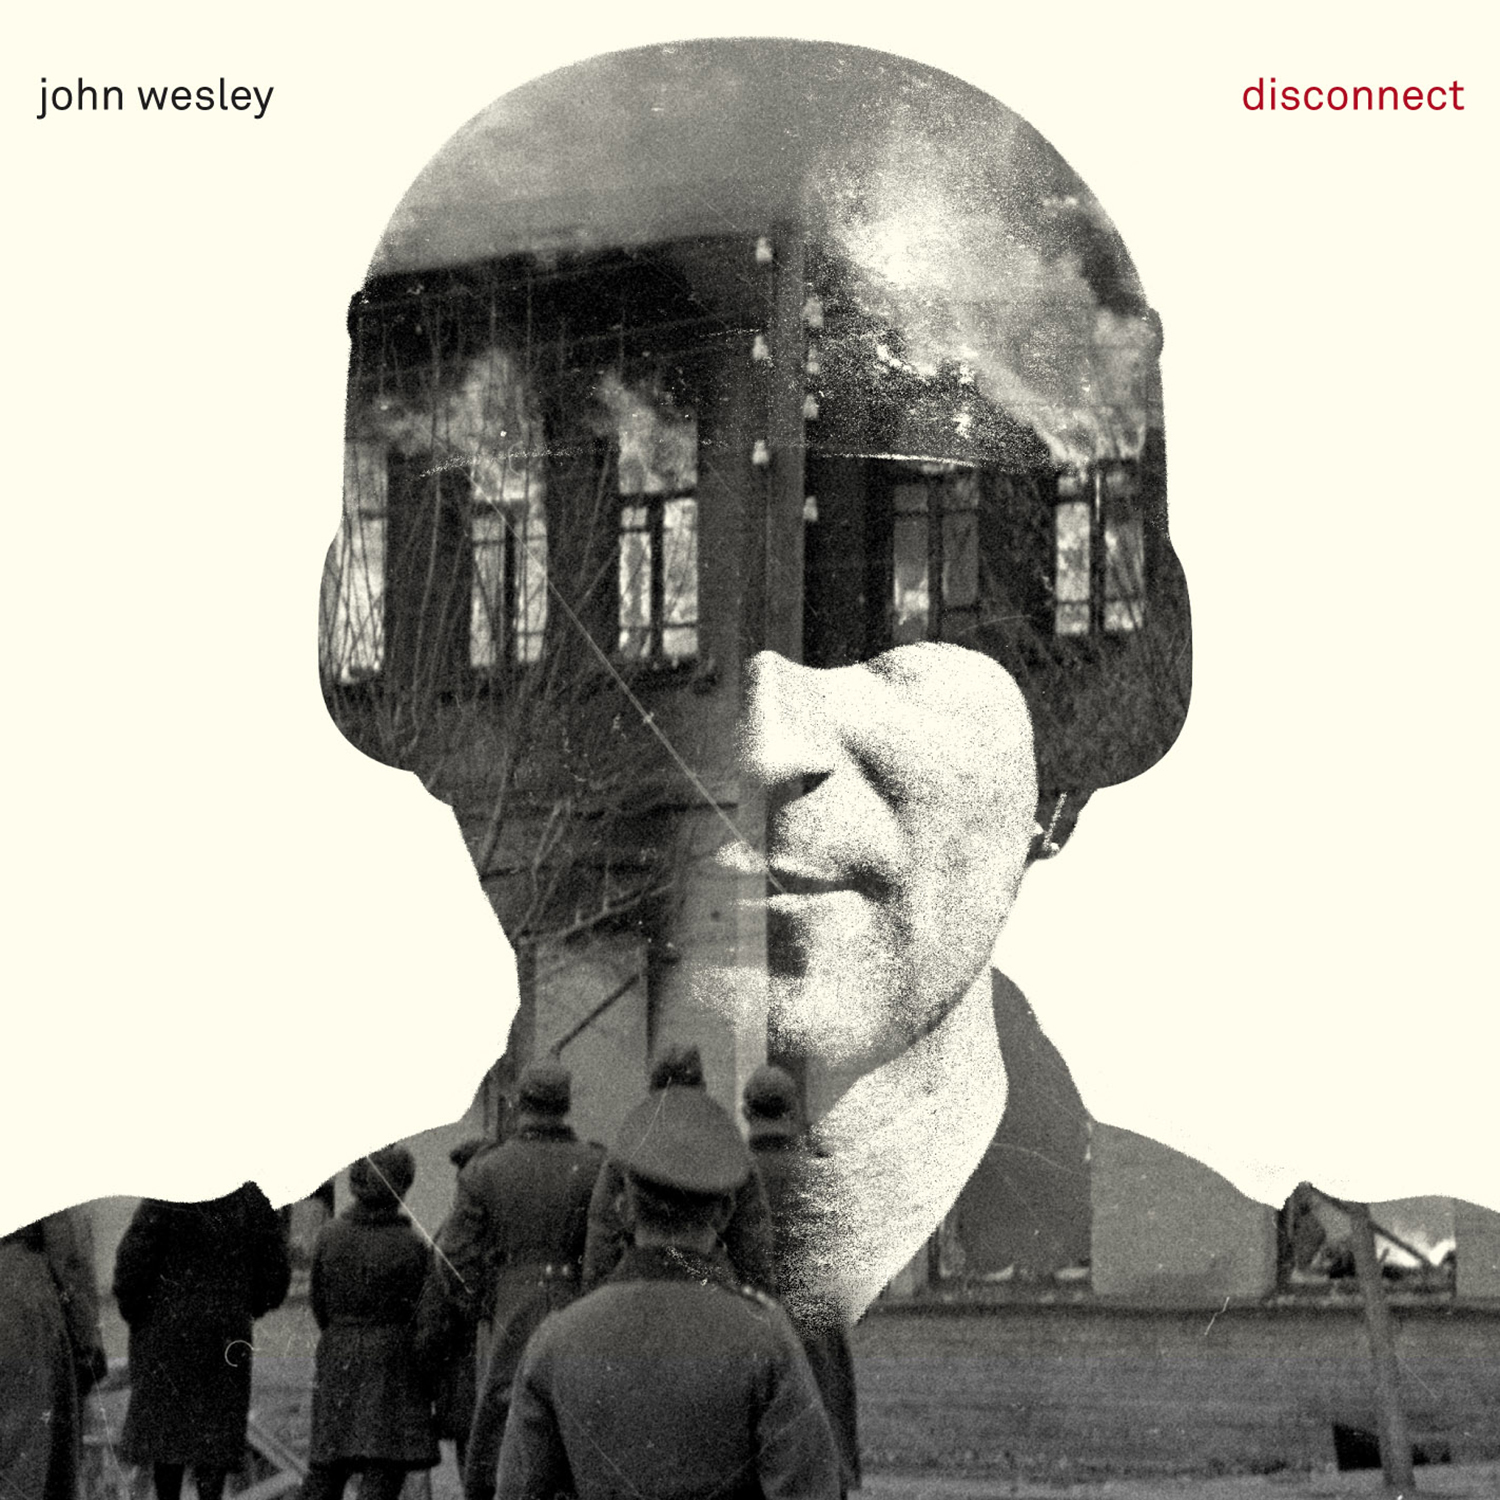 CD Pre-Review: Disconnect by John Wesley